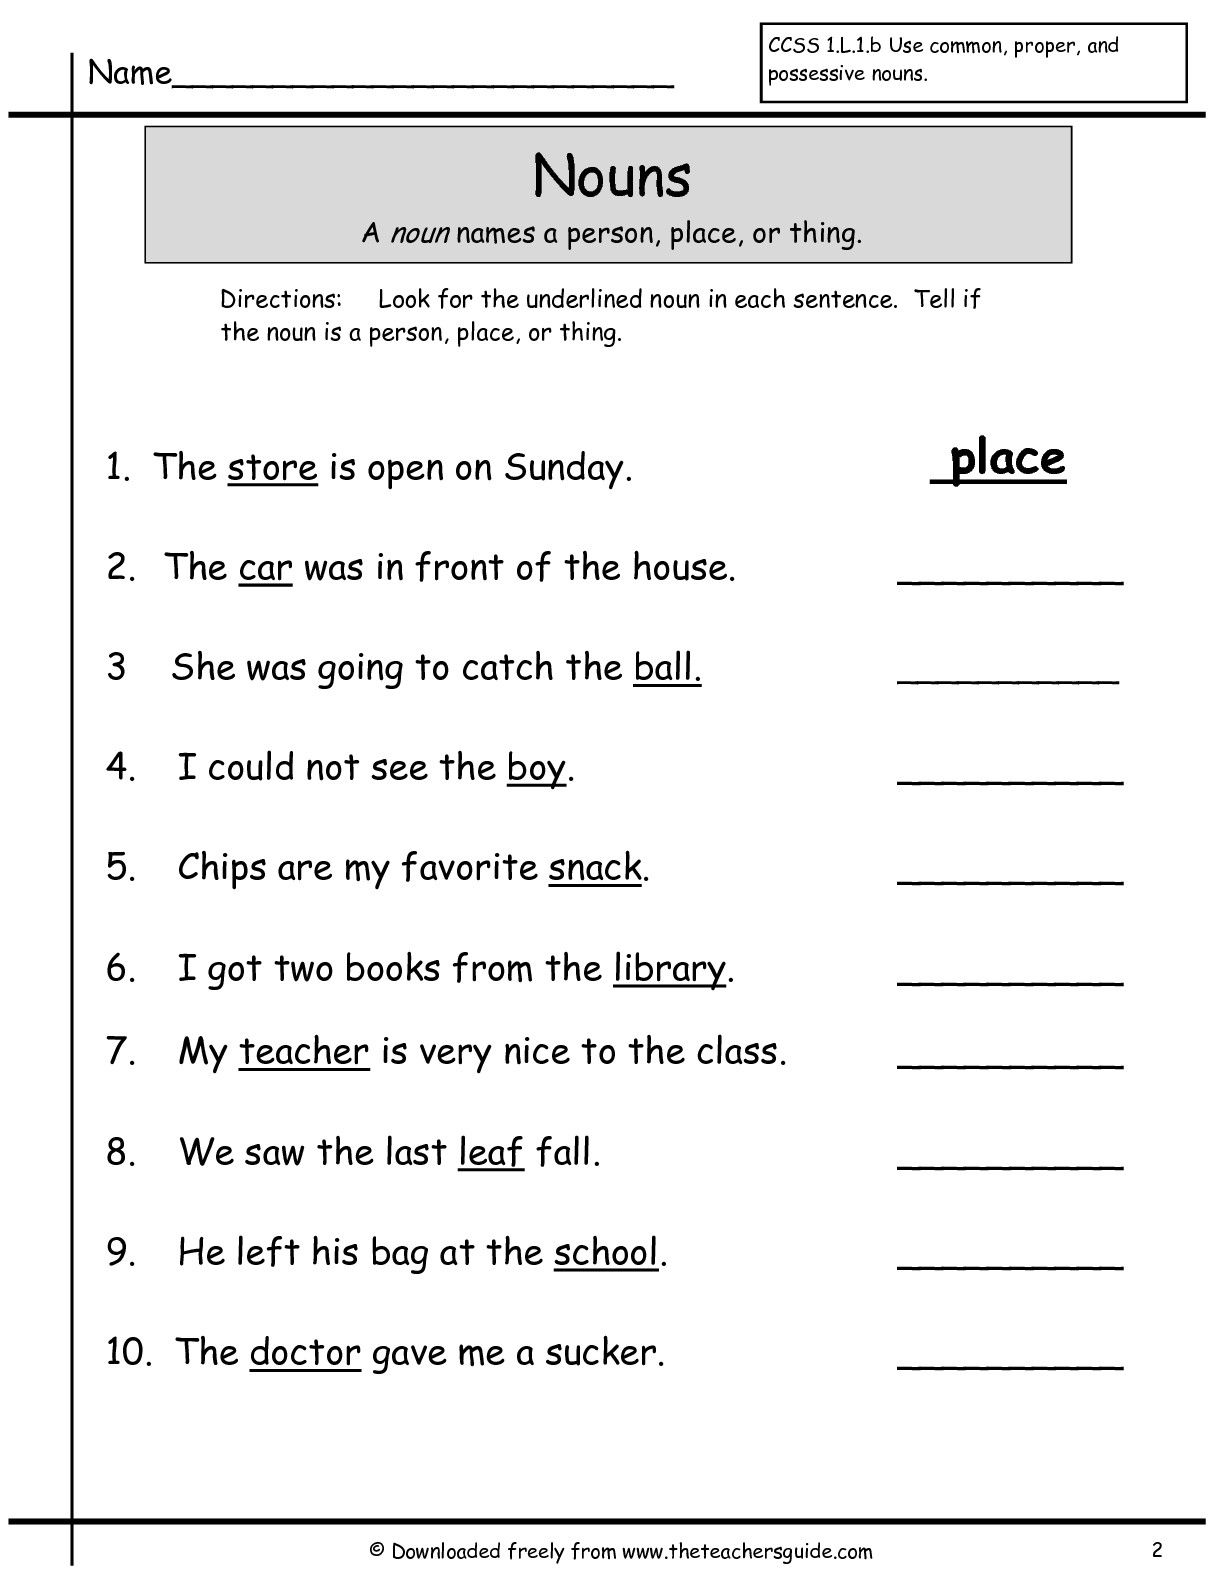 nouns grade 1 worksheets Google Search Kelina – Nouns Worksheets